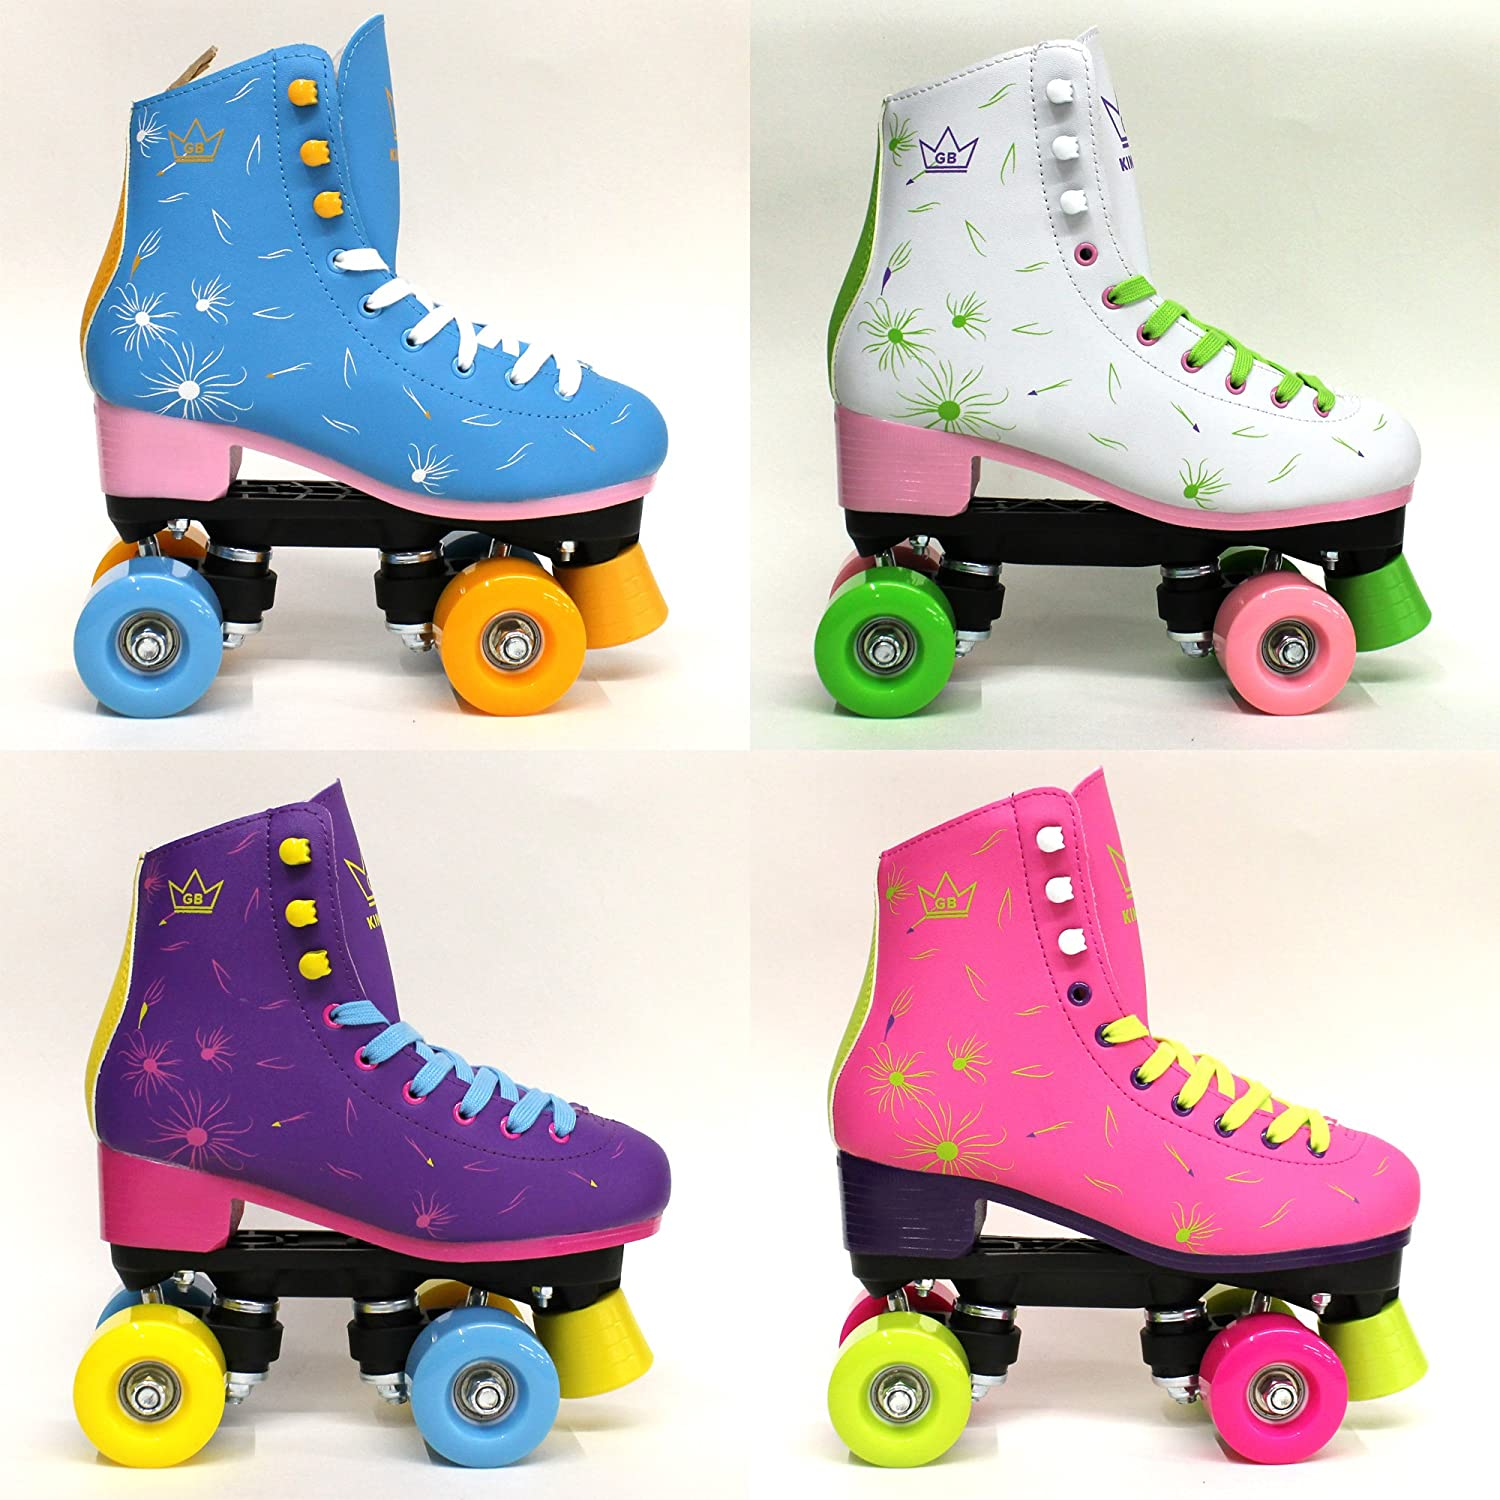 TALLA 37 EU. Venus Patines de Ruedas Kingdom GB Quad Wheels